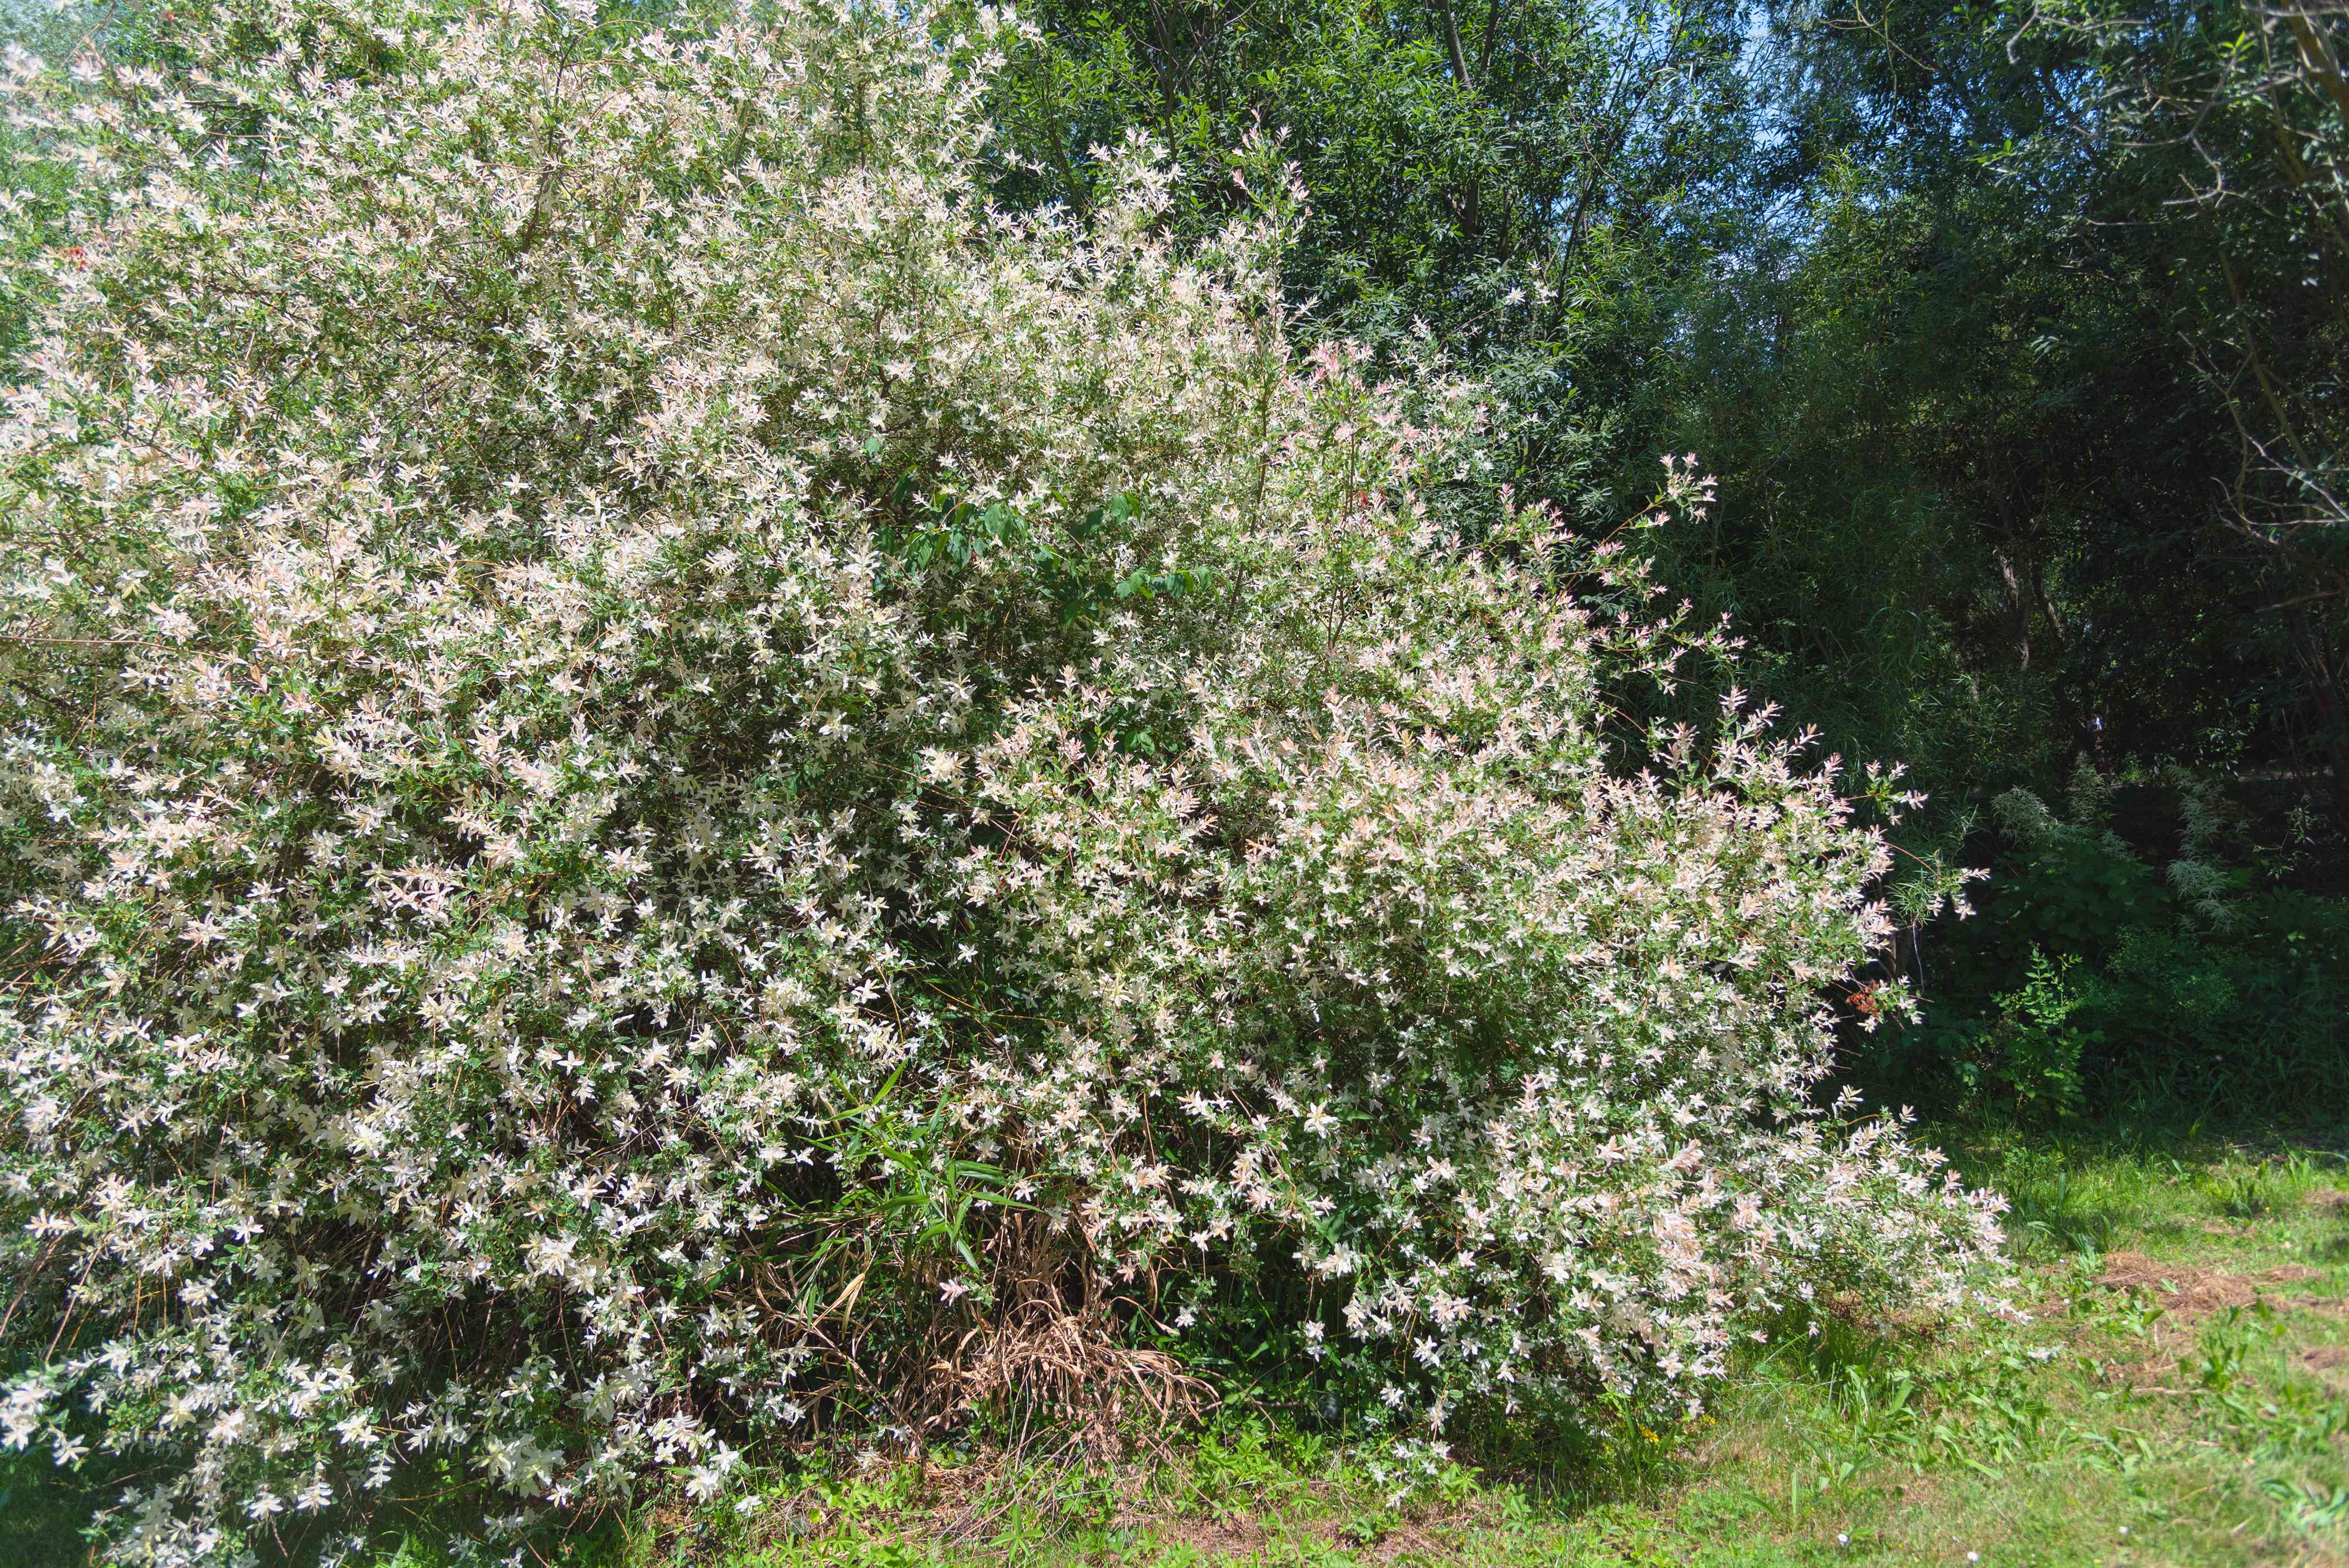 Flamingo willow shrub with white and green foliage in sunlight